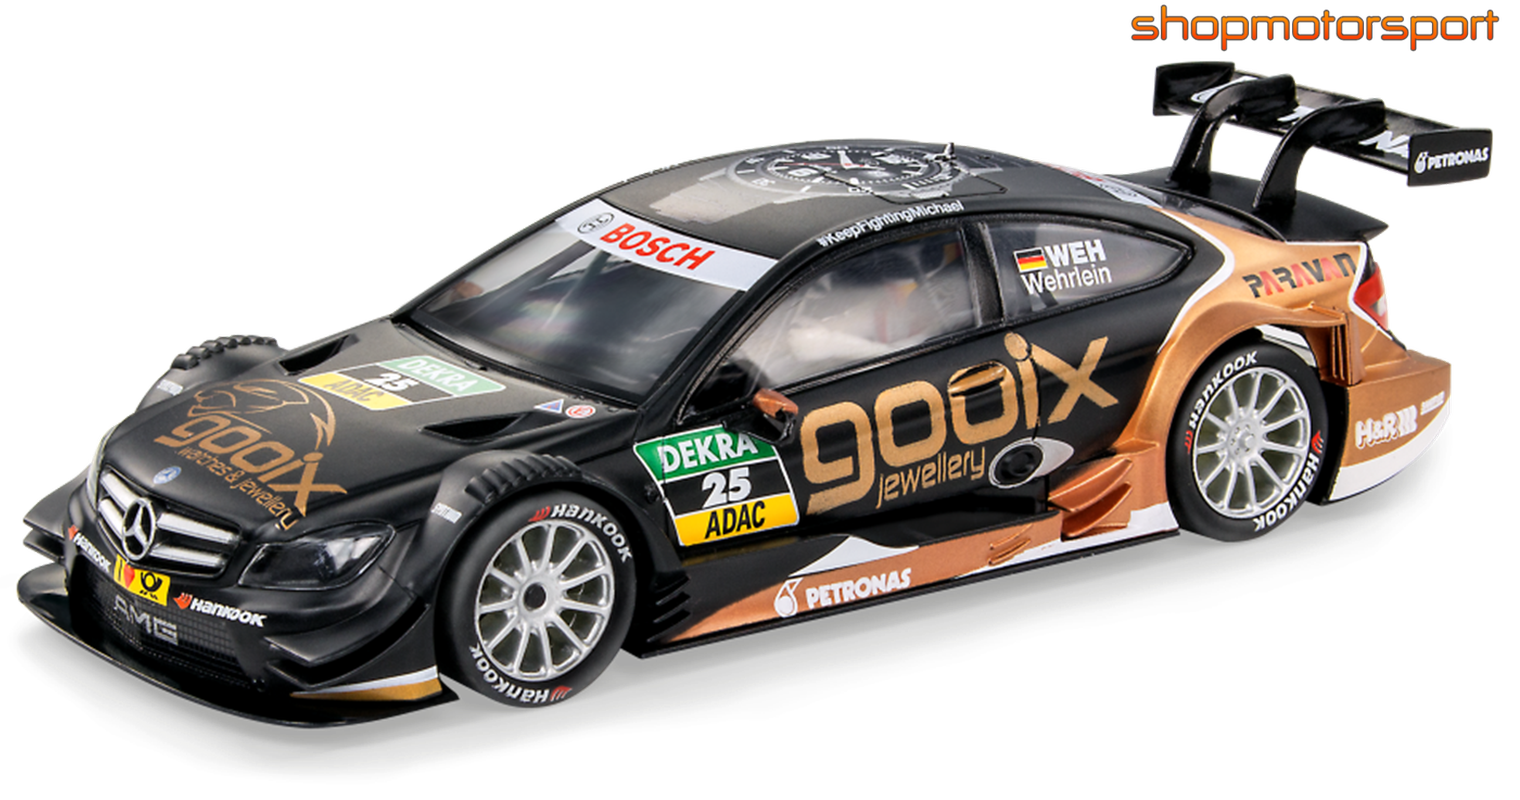 MERCEDES AMG C-COUPE DTM / SCALEXTRIC A10189S300 / PASCAL WEHRLEIN